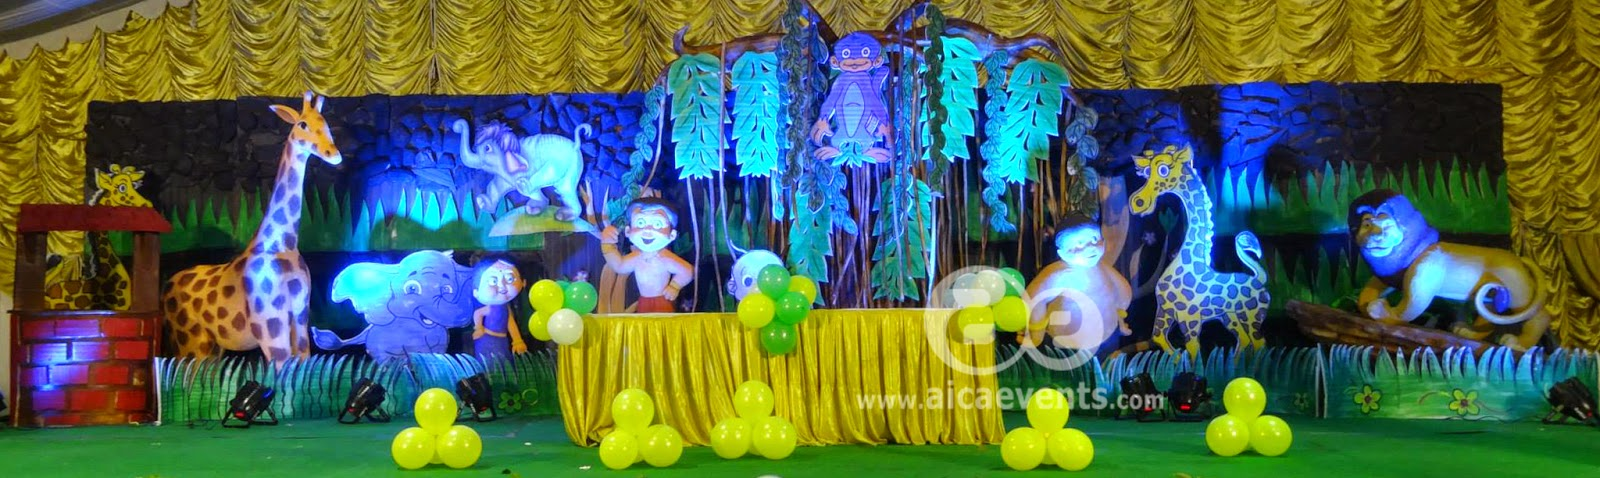 Aicaevents India Chhota Bheem Theme Party Decorations